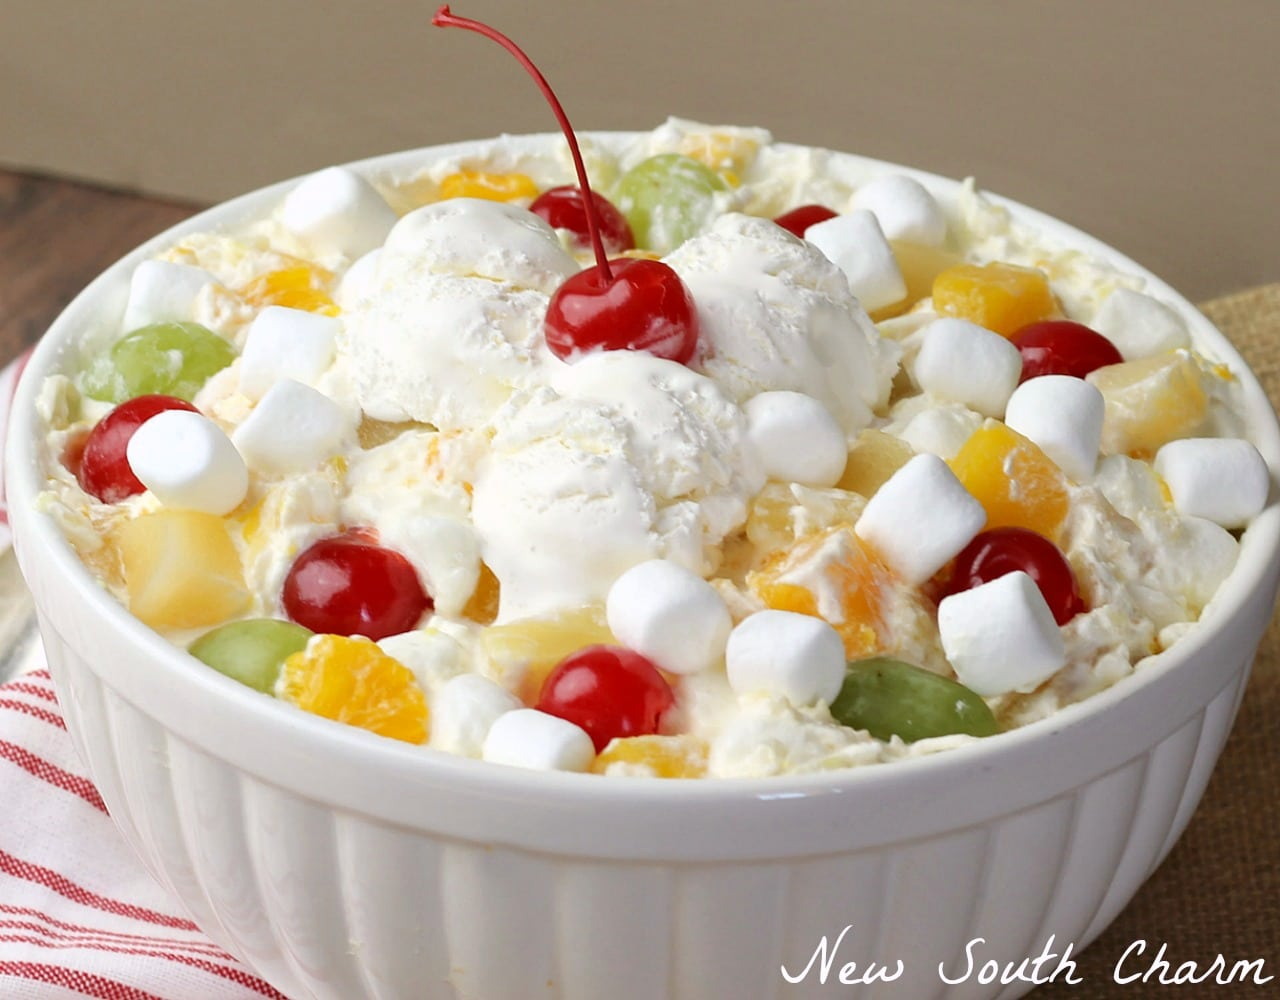 Ambrosia Salad cool whip